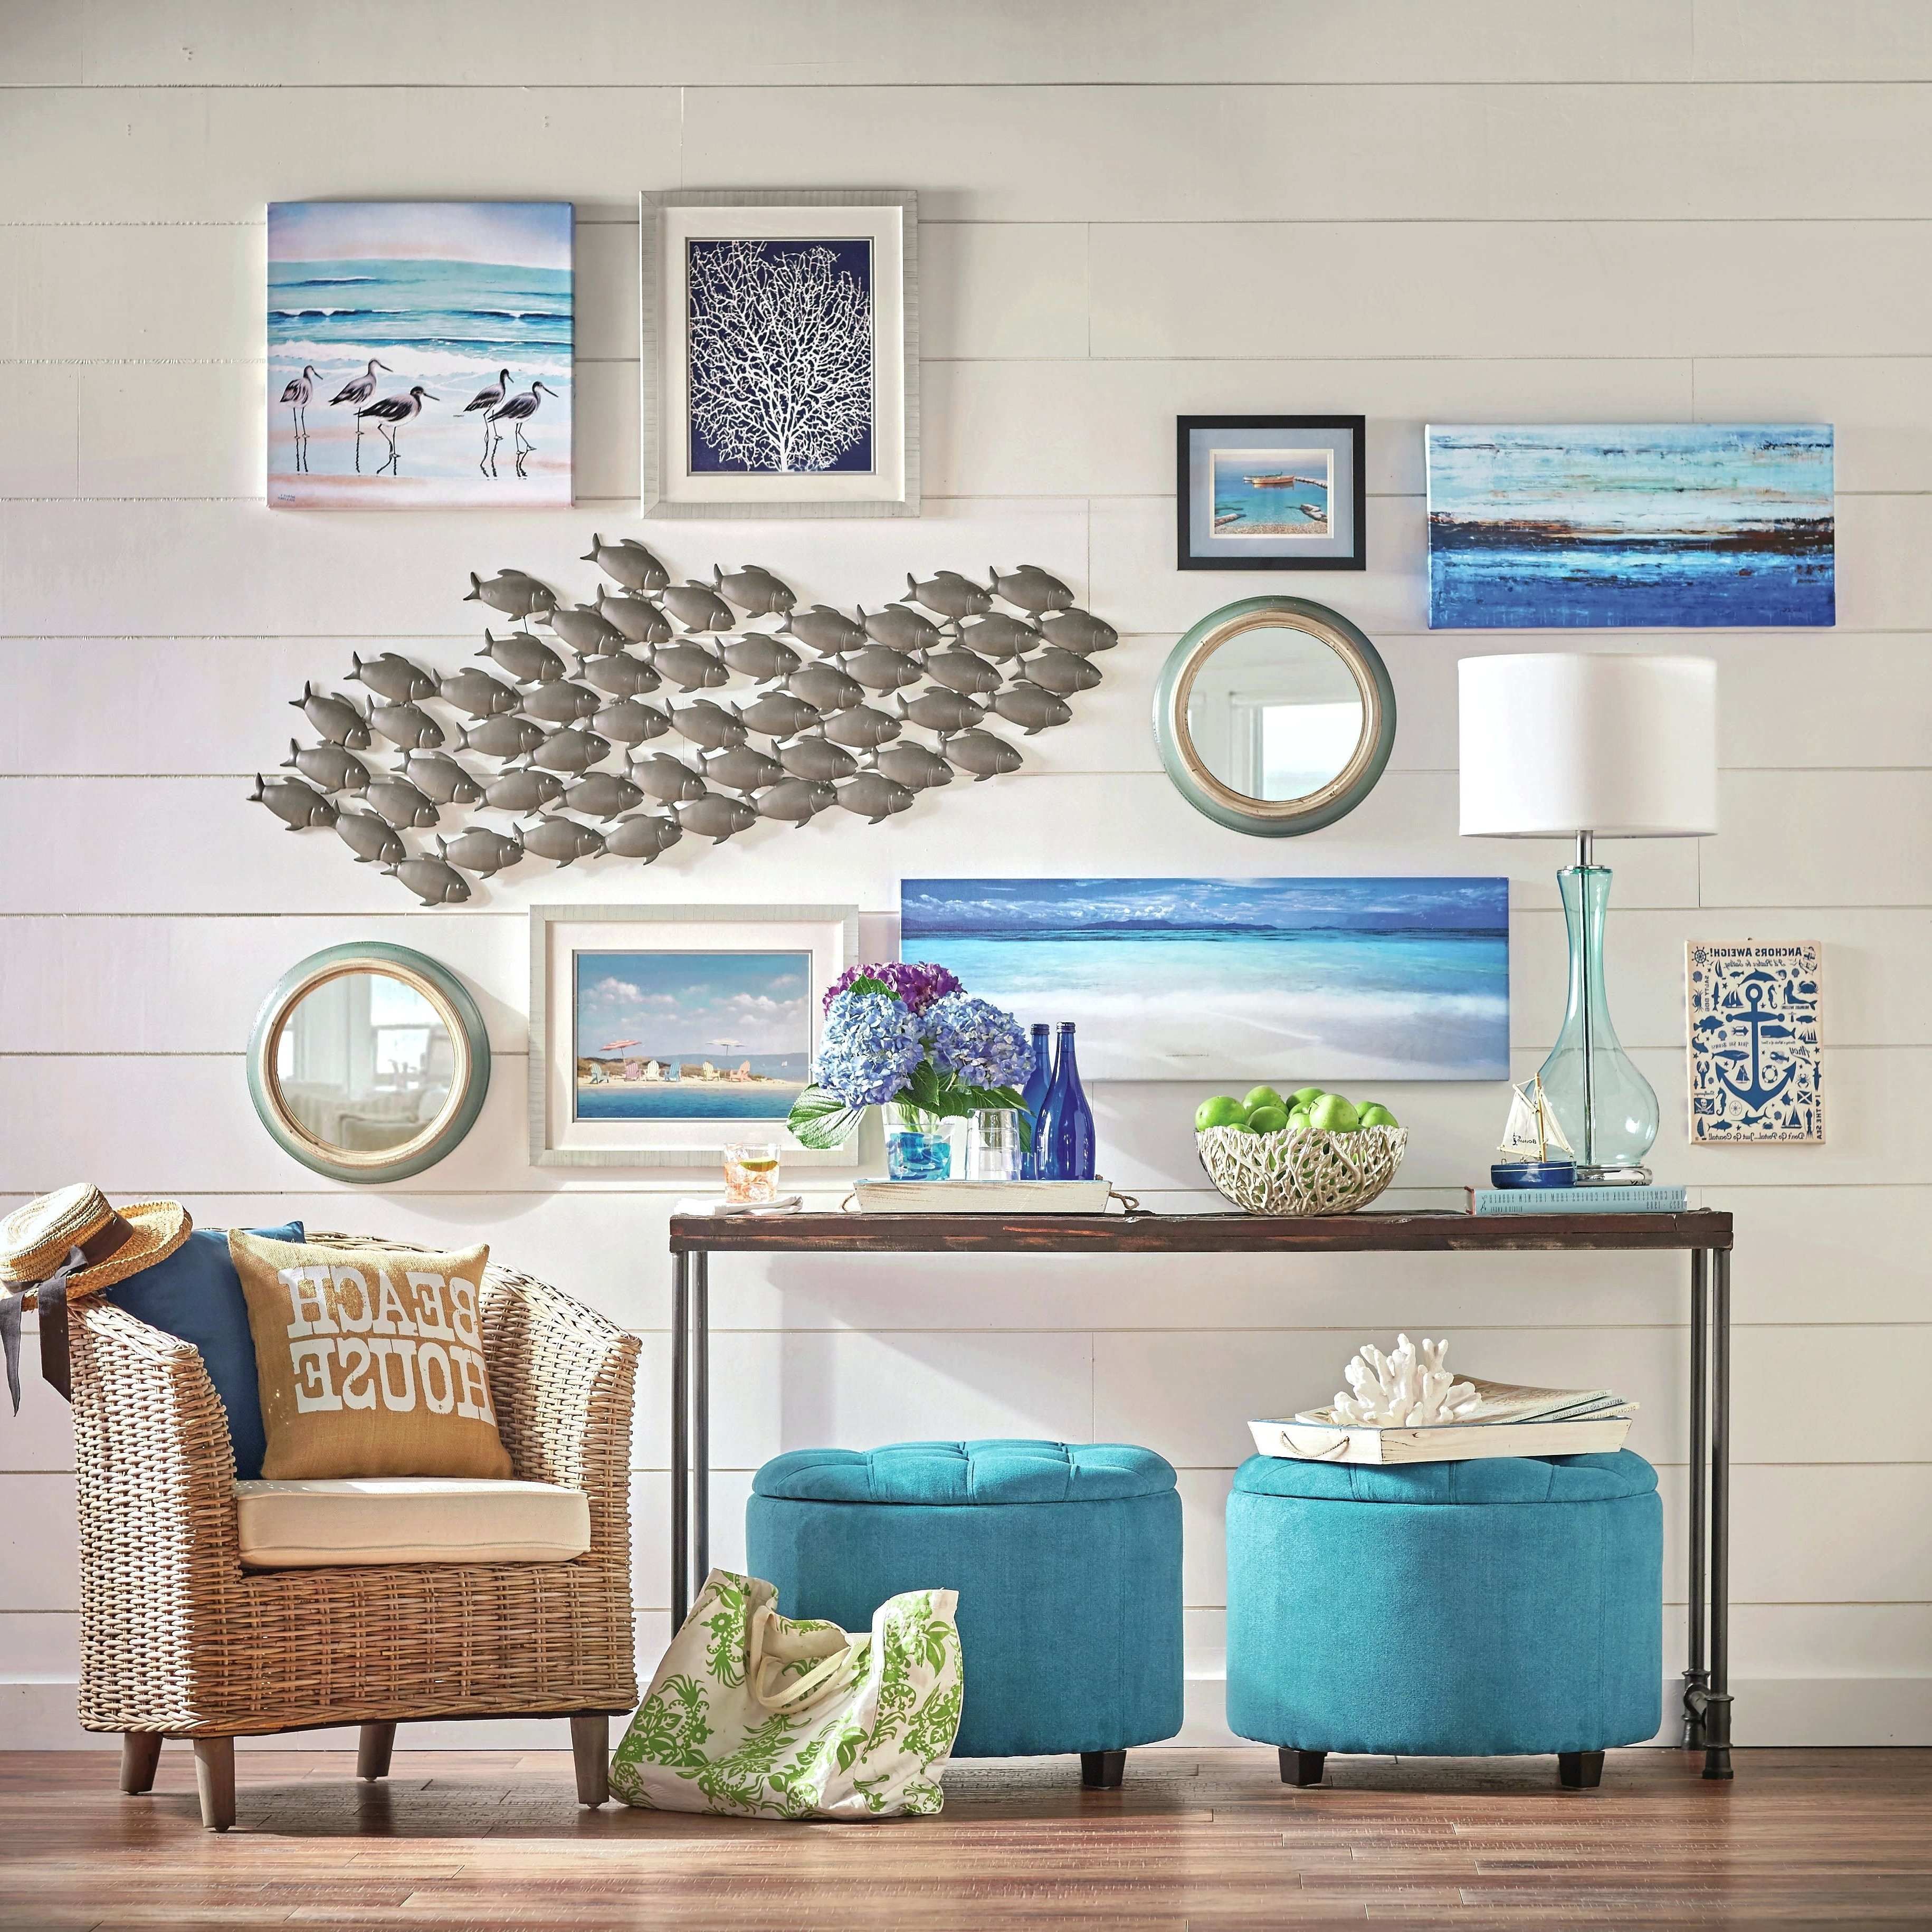 Lovely Lake House Wall Art Images – Hypermallapartments Within Recent Lake House Wall Art (View 2 of 15)